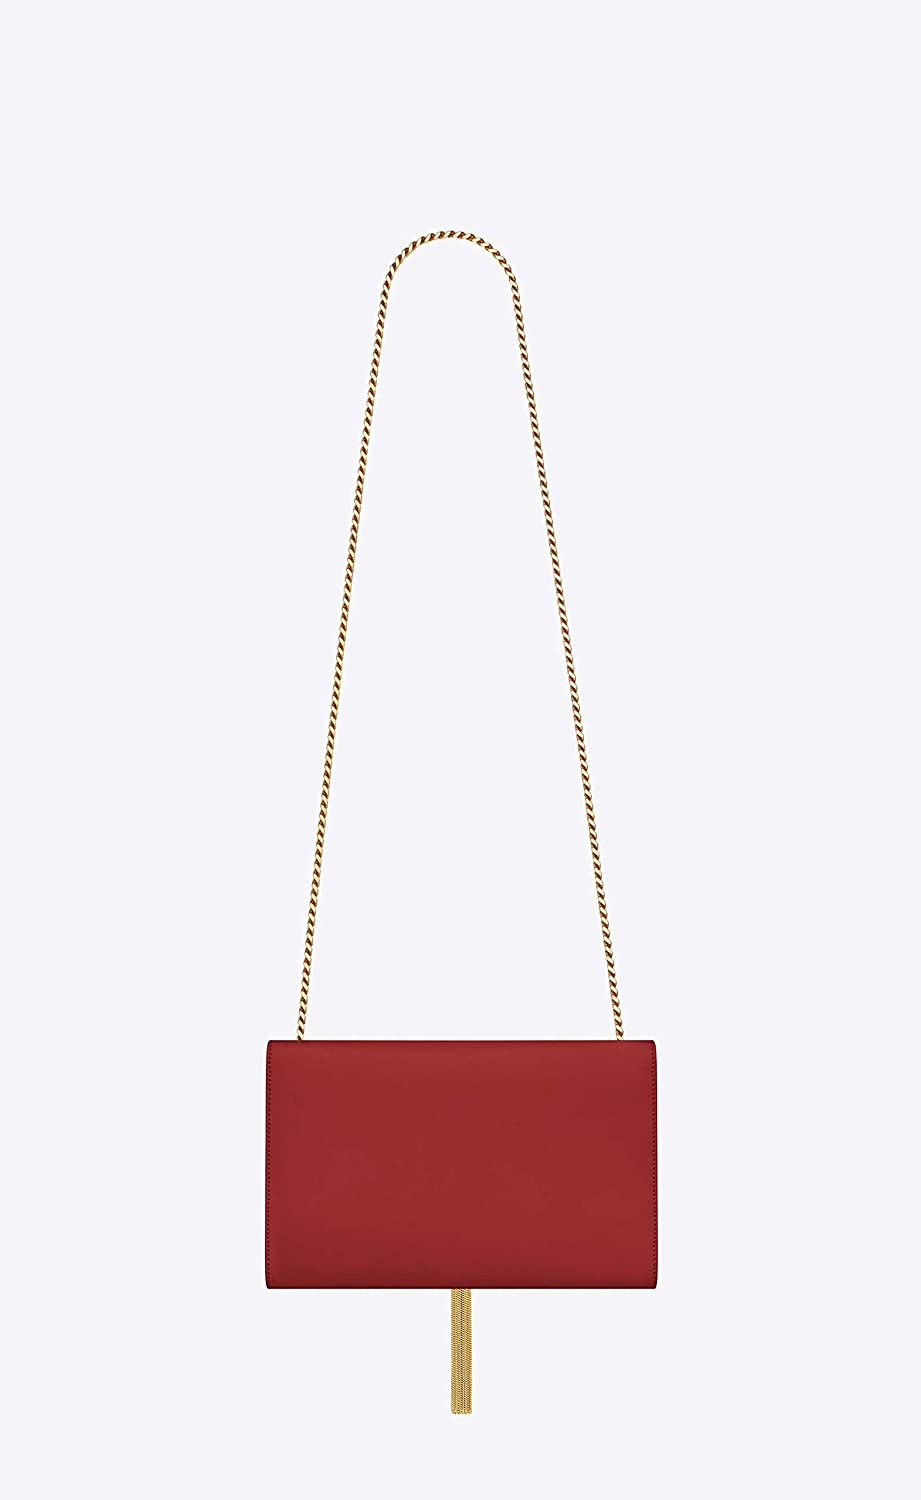 53170cbe95e45d Paper Yves Saint Laurent monogram kate with tassel kate medium with tassel  in smooth leather women Shoulder Bag Classic New (red): Handbags: Amazon.com